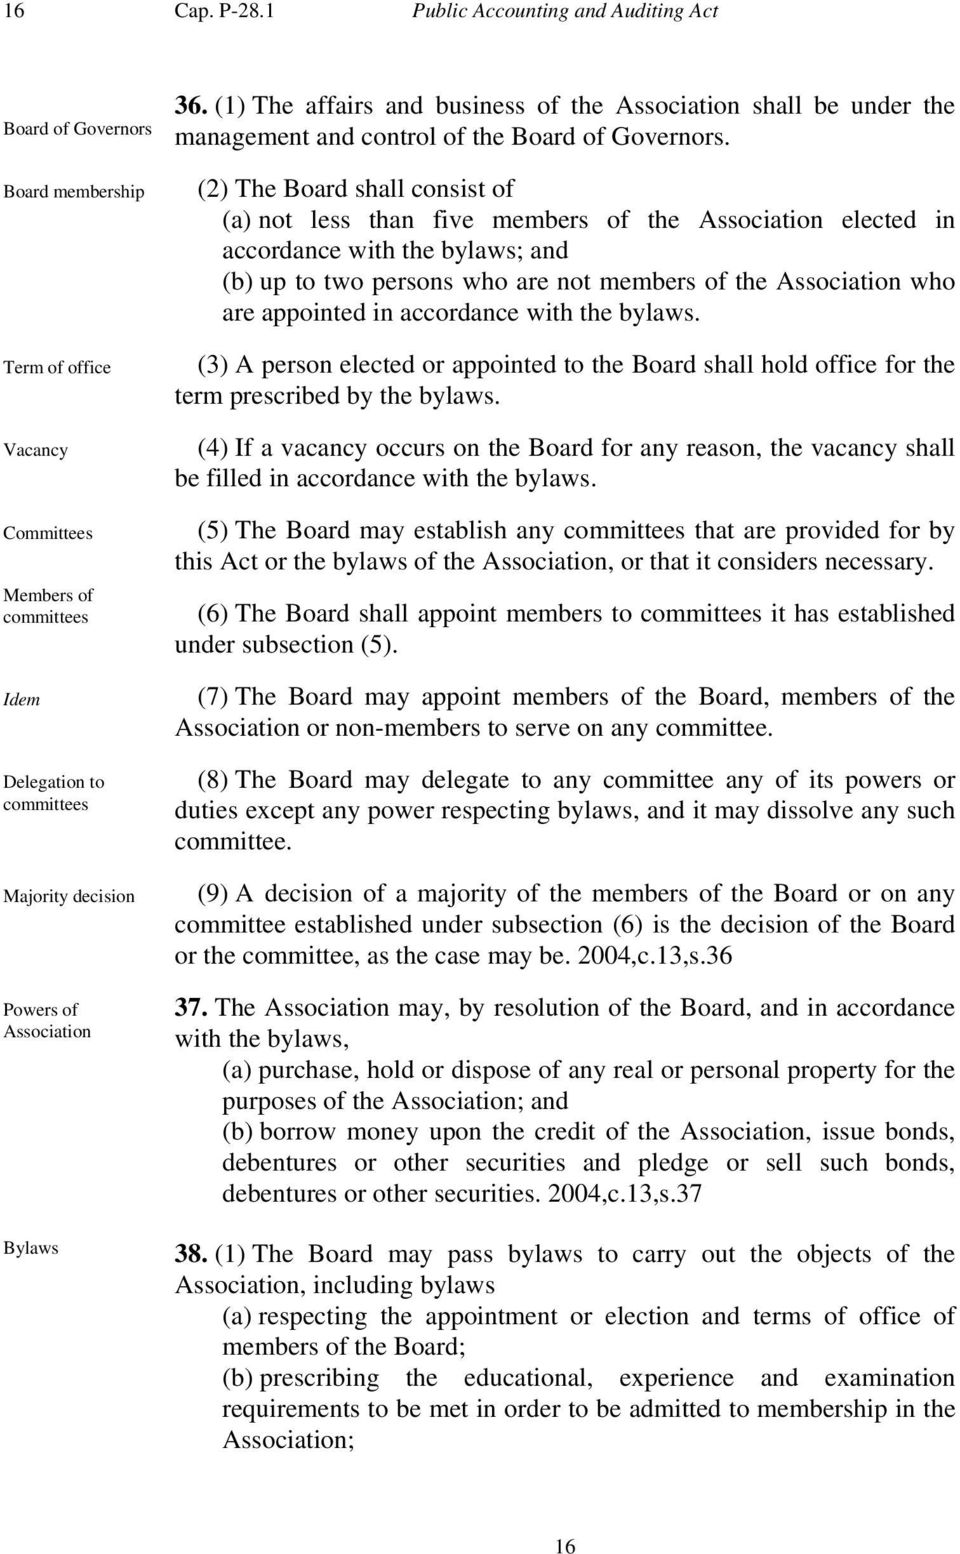 Bylaws 36. (1) The affairs and business of the Association shall be under the management and control of the Board of Governors.